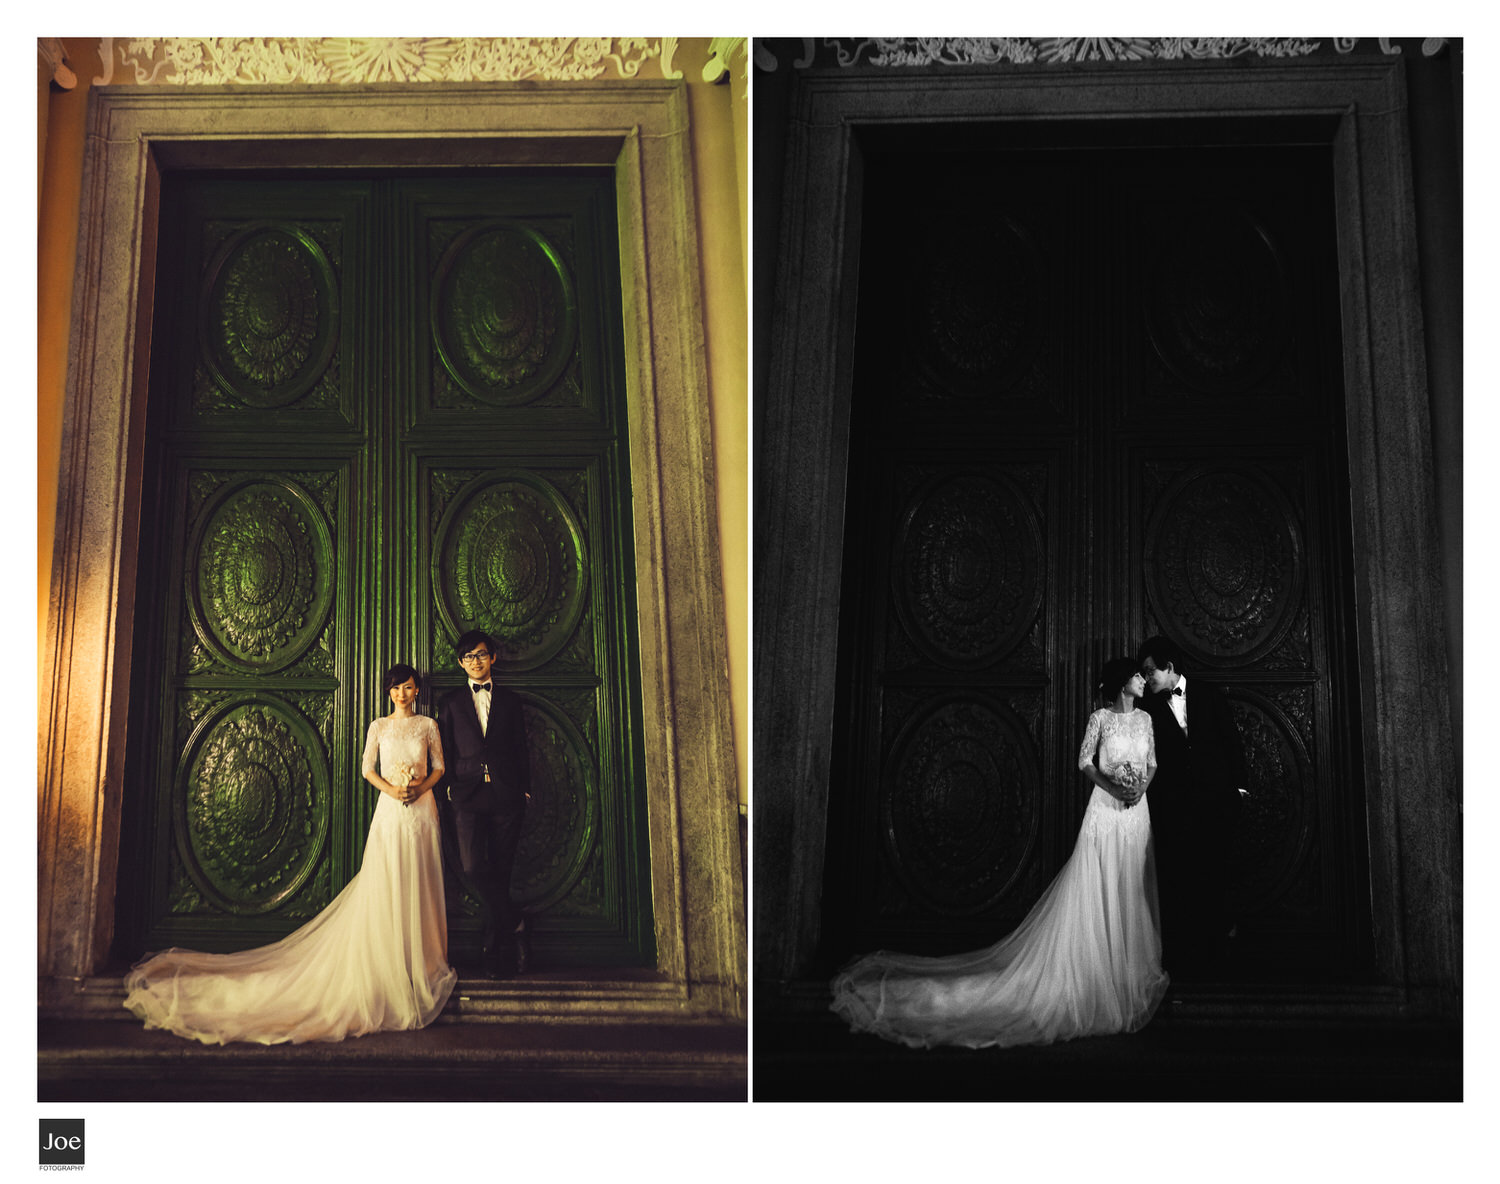 40-st-dominics-church-museum-macau-pre-wedding-angela-weidi-joe-fotography.jpg